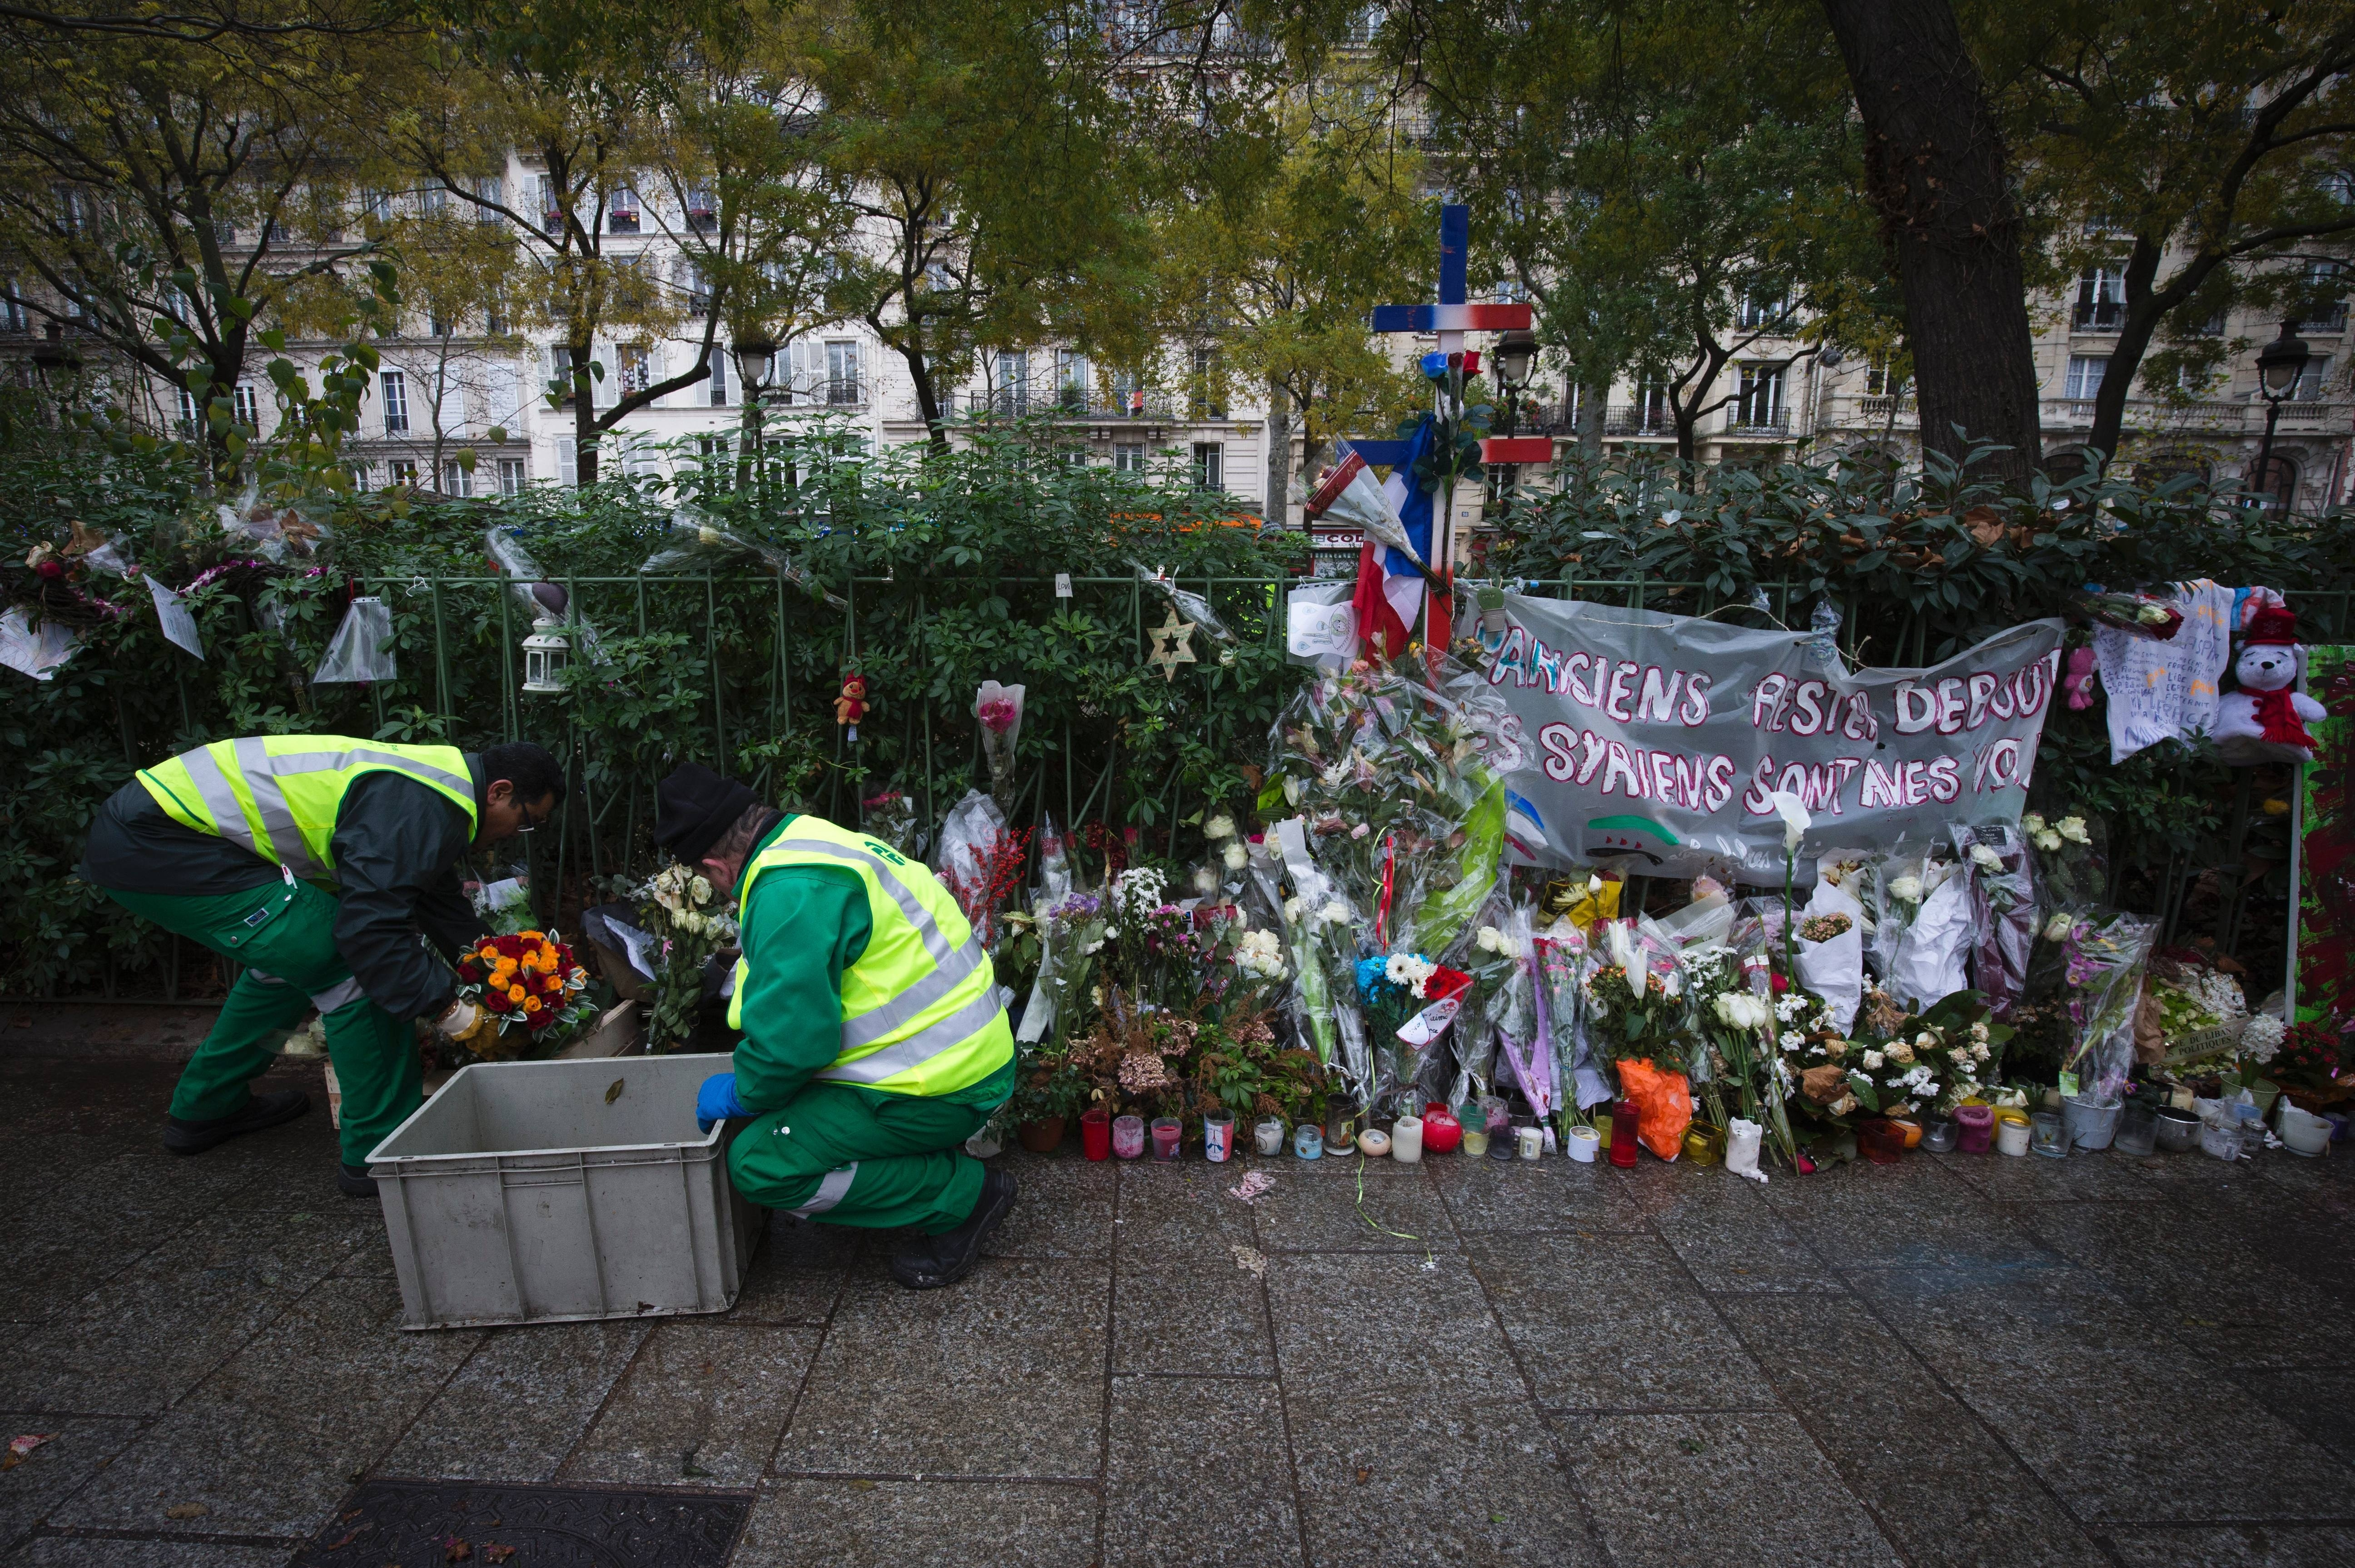 Paris Preserves Impromptu Memorials To Victims Of Attack